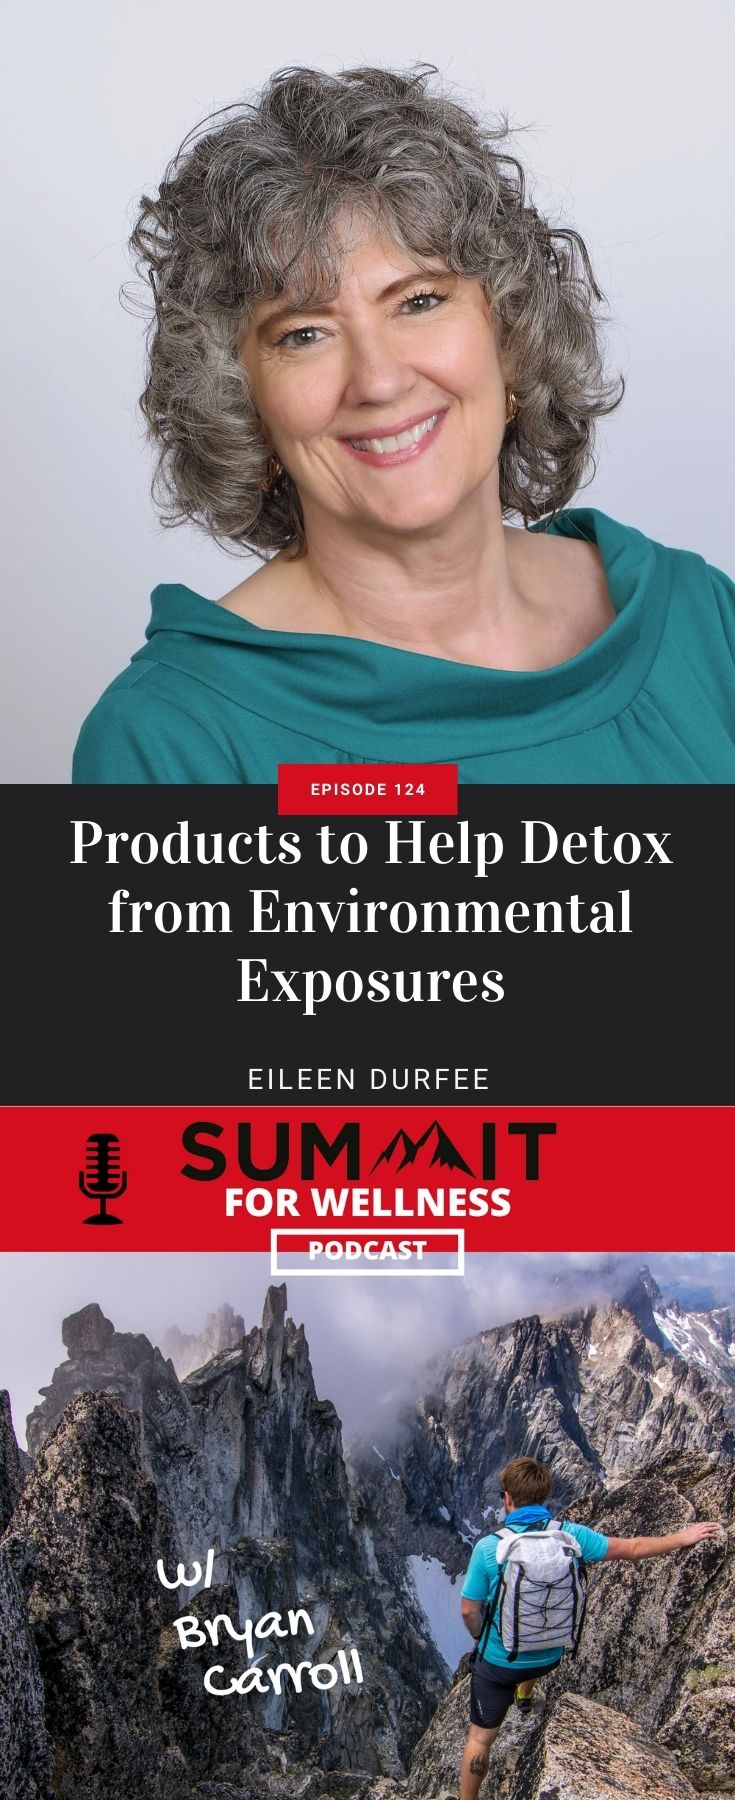 Eileen Durfee shares how to use Creatrix to detox from environmental toxins